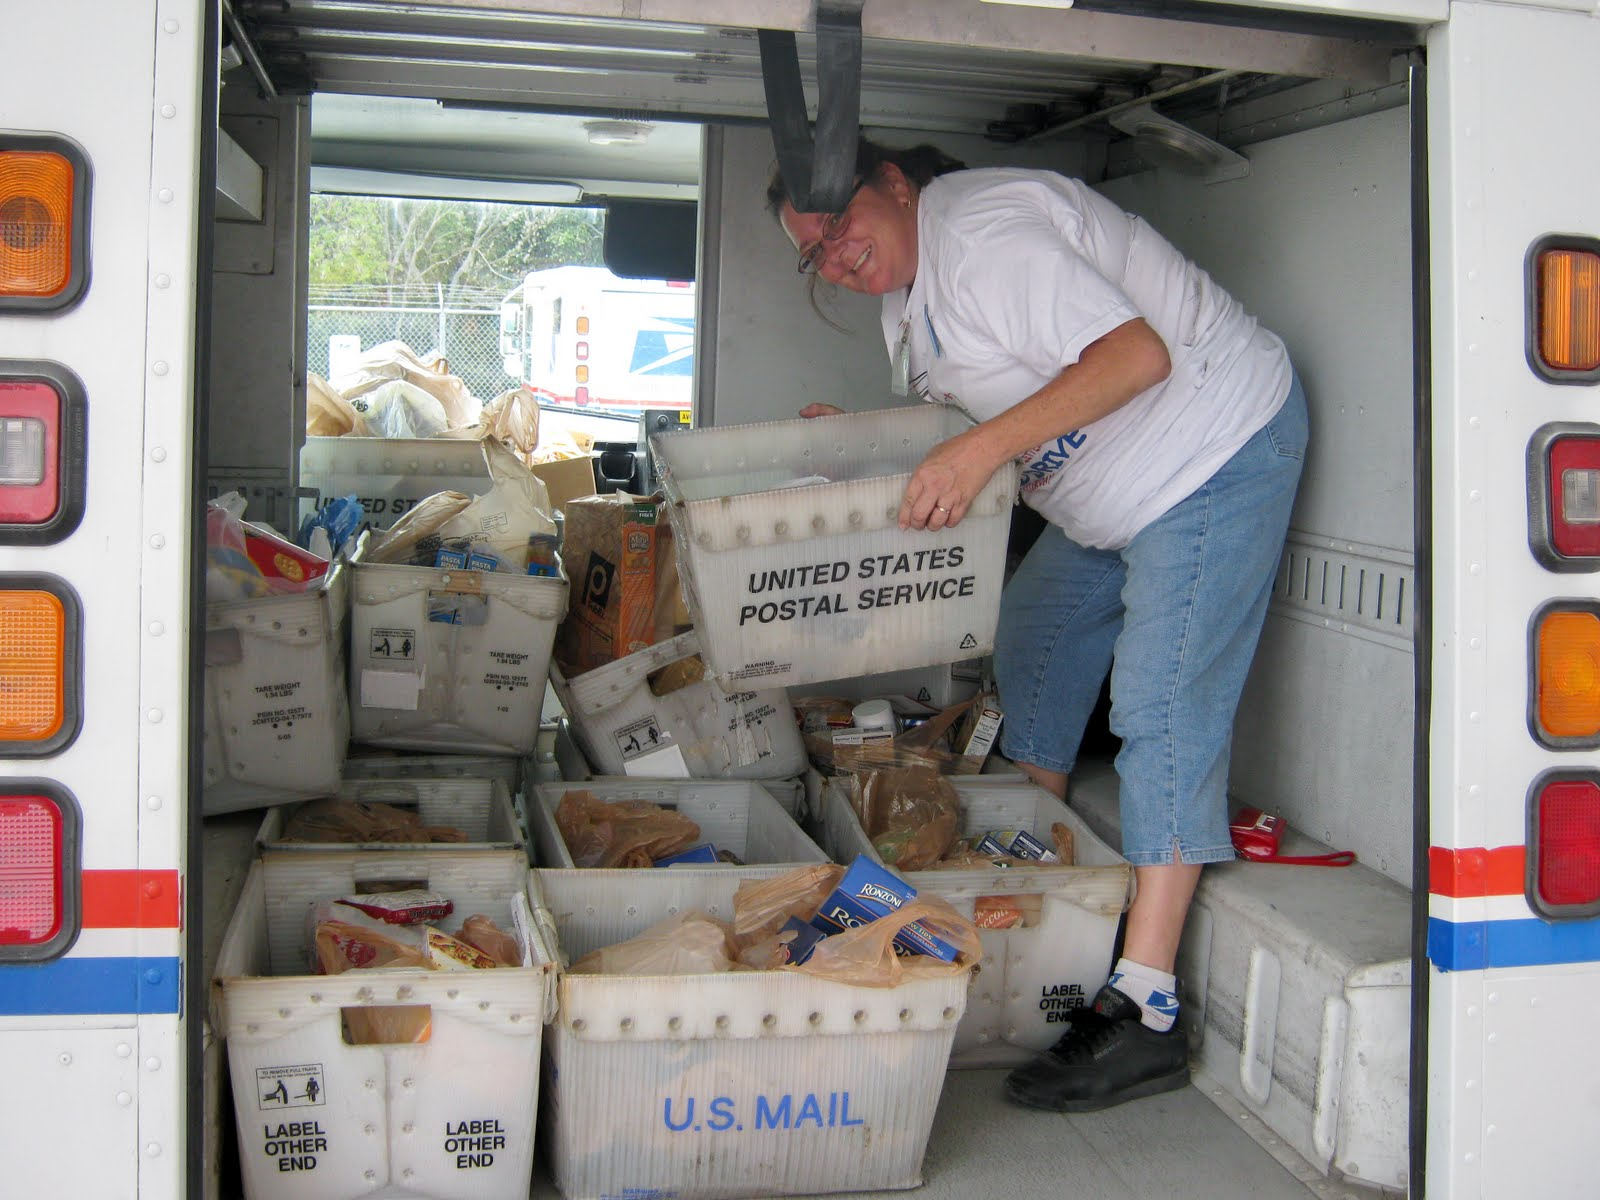 South Florida Postal Blog: May 2011